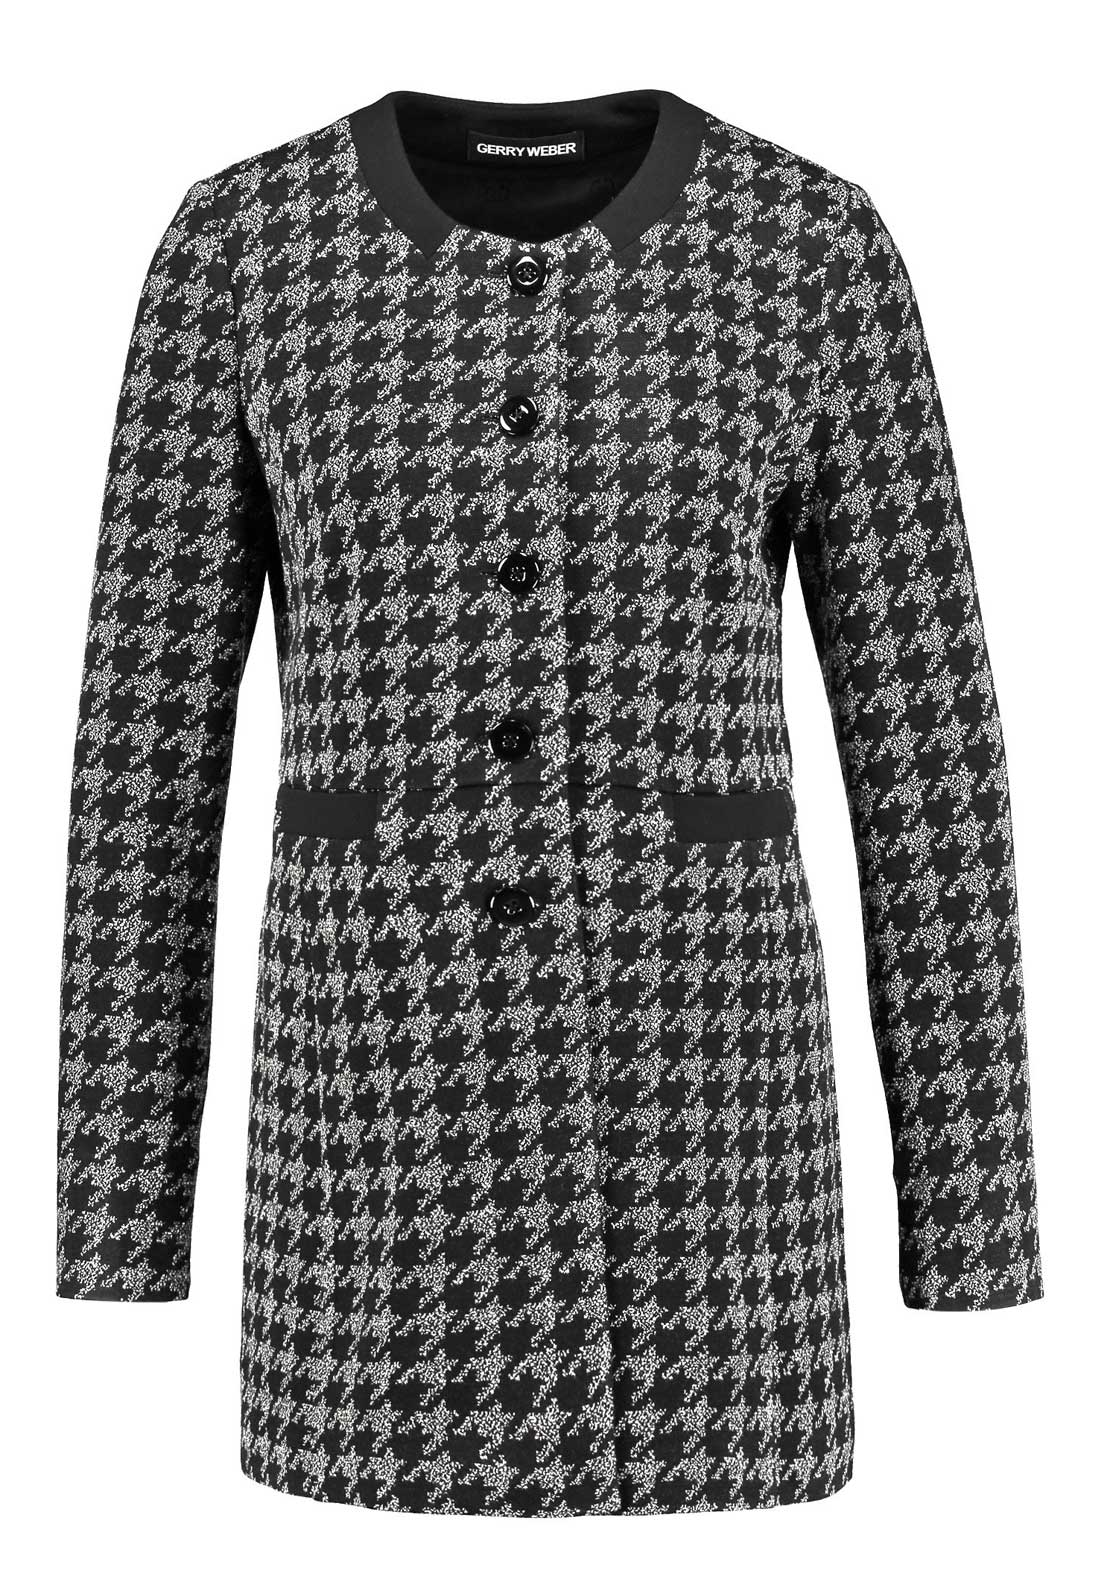 Gerry Weber Houndstooth Print Coatigan, Black